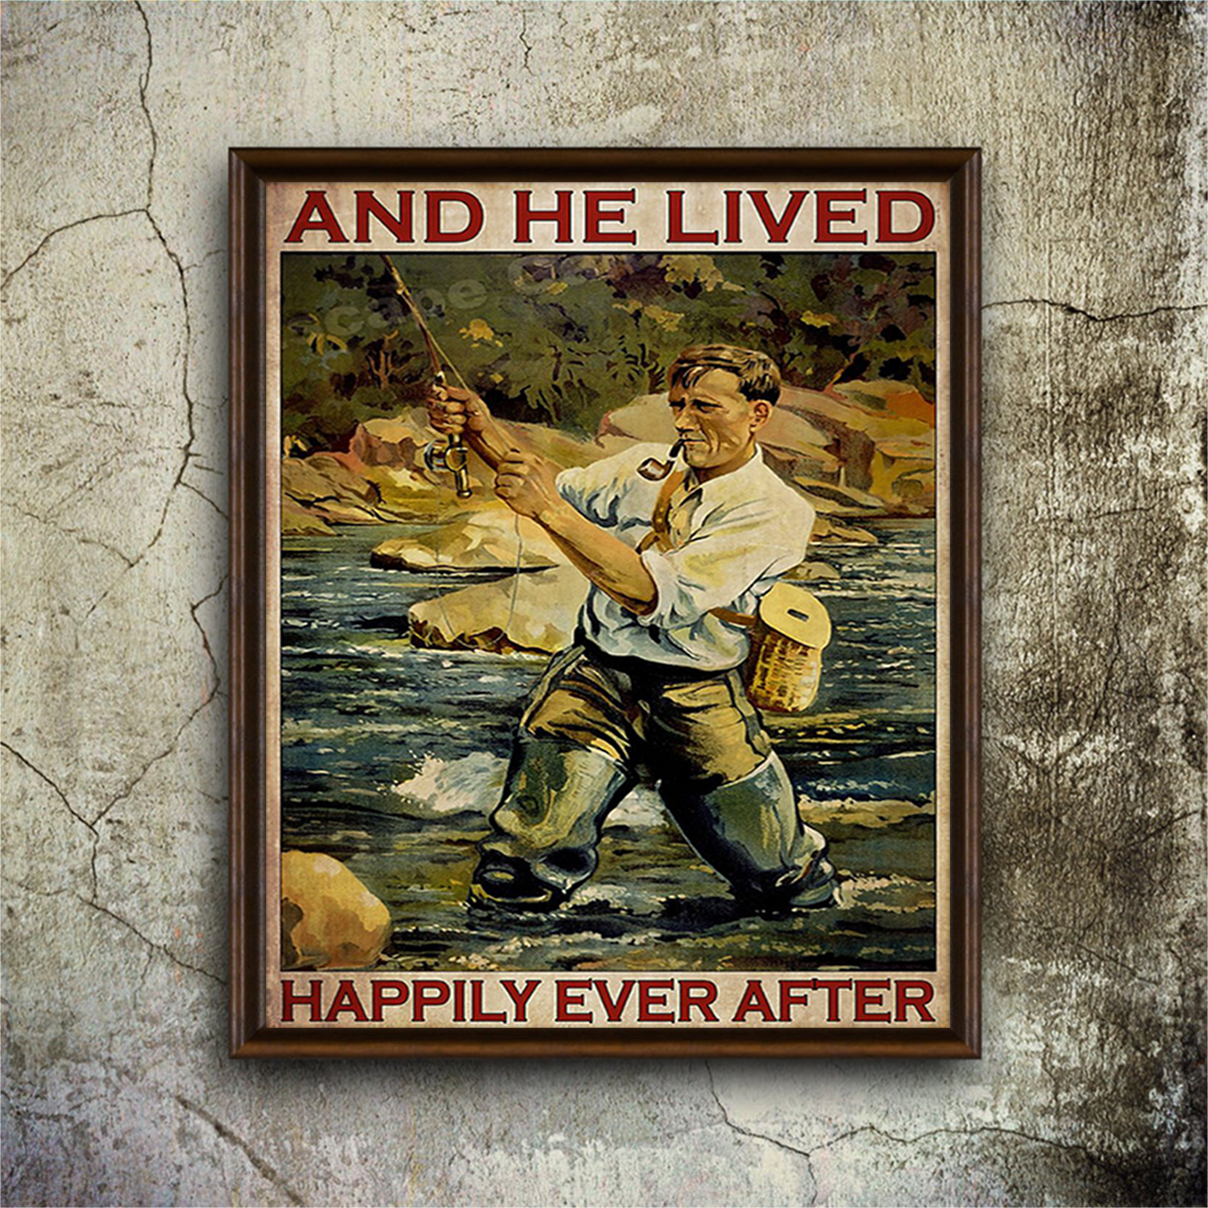 Fishing and he lived happily ever after poster A3